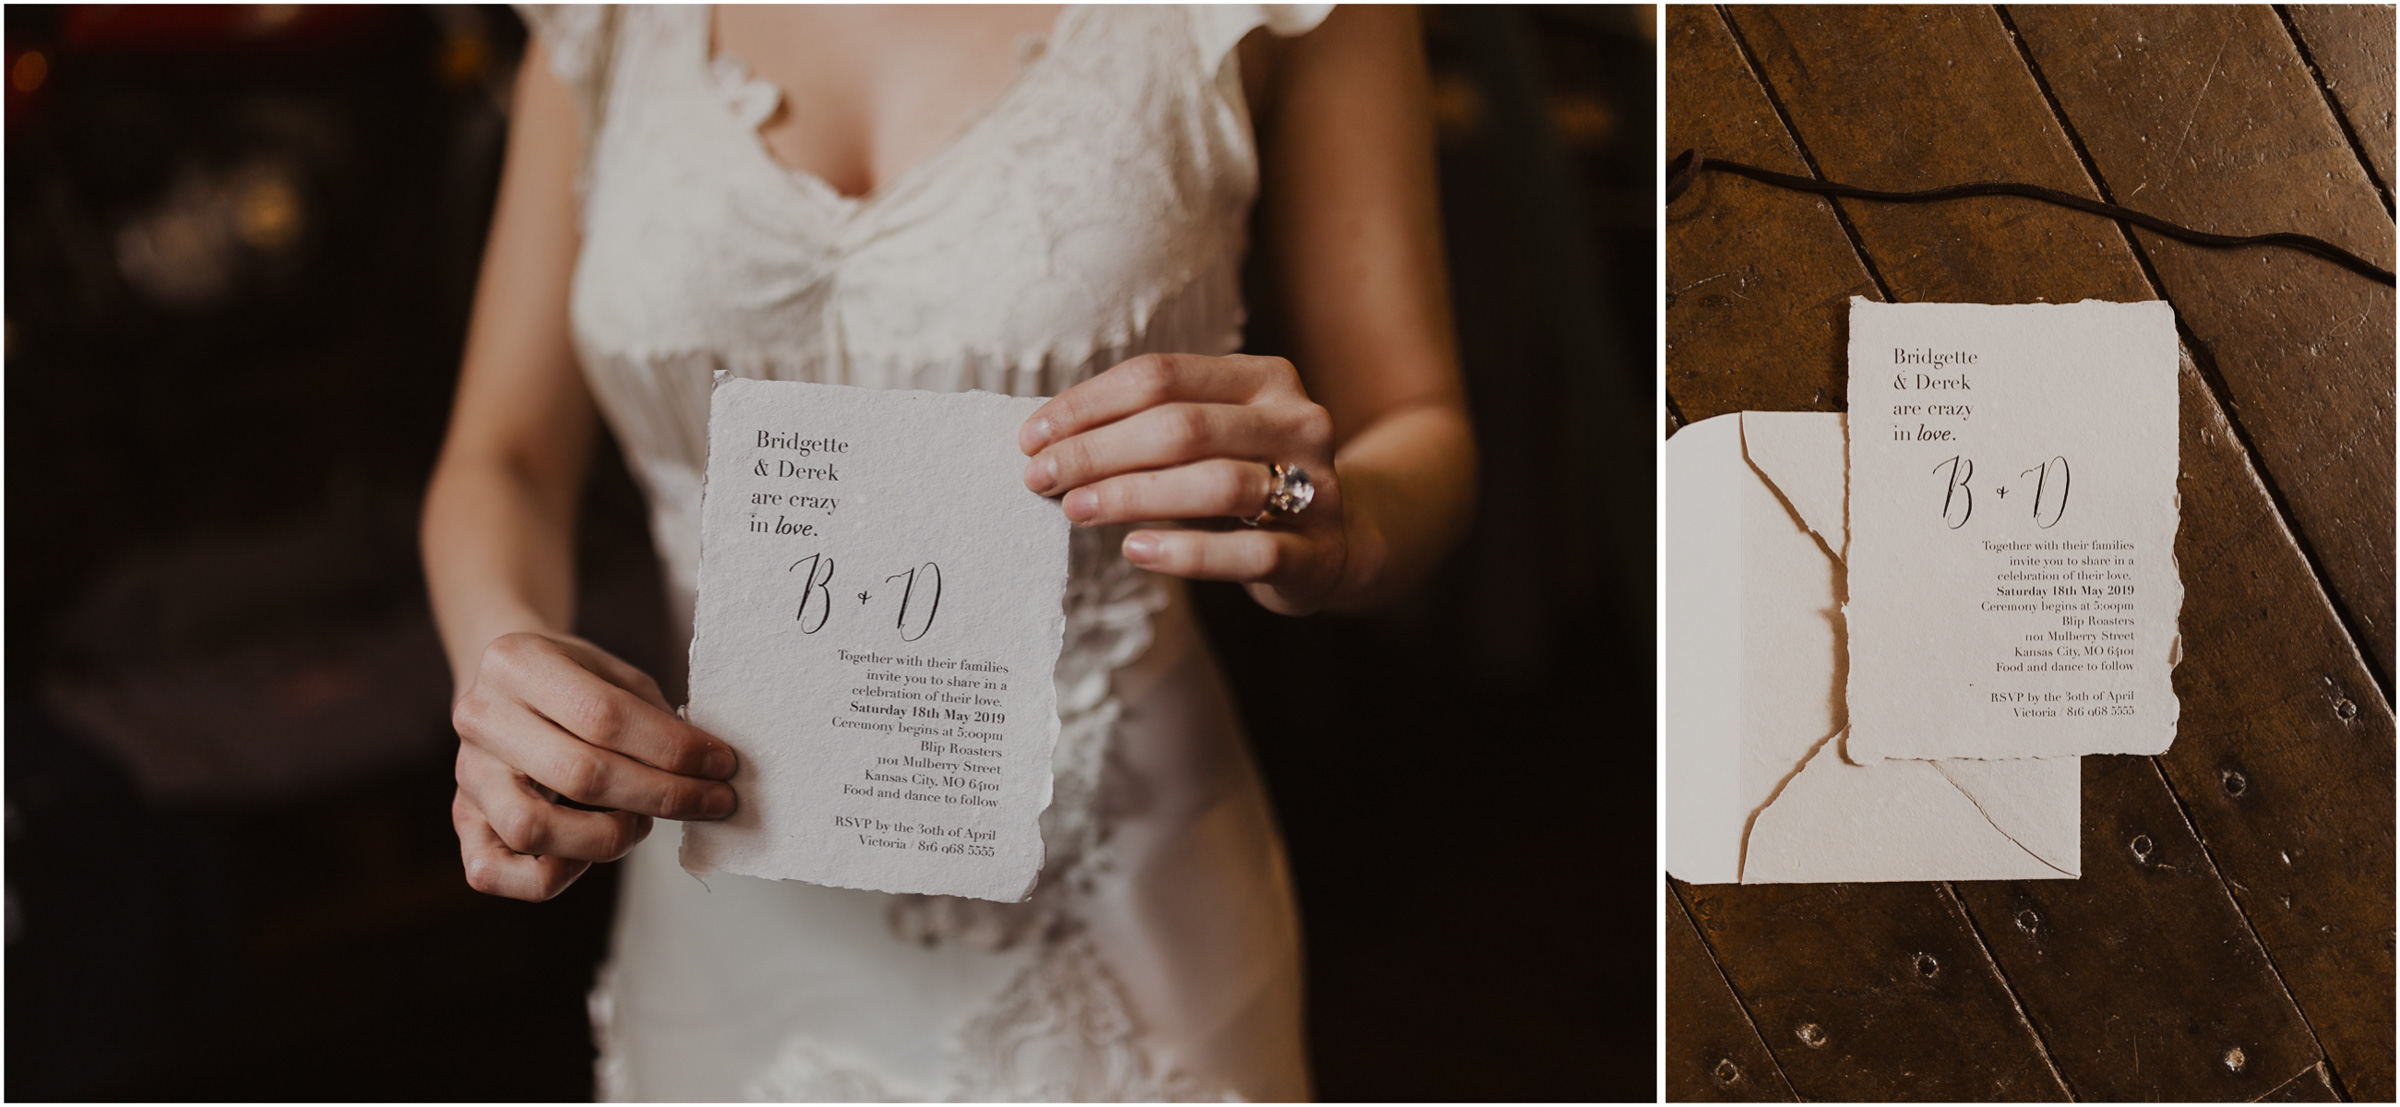 alyssa barletter photography styled shoot wedding inspiration kansas city west bottoms photographer motorcycle edgy intimate-2.jpg